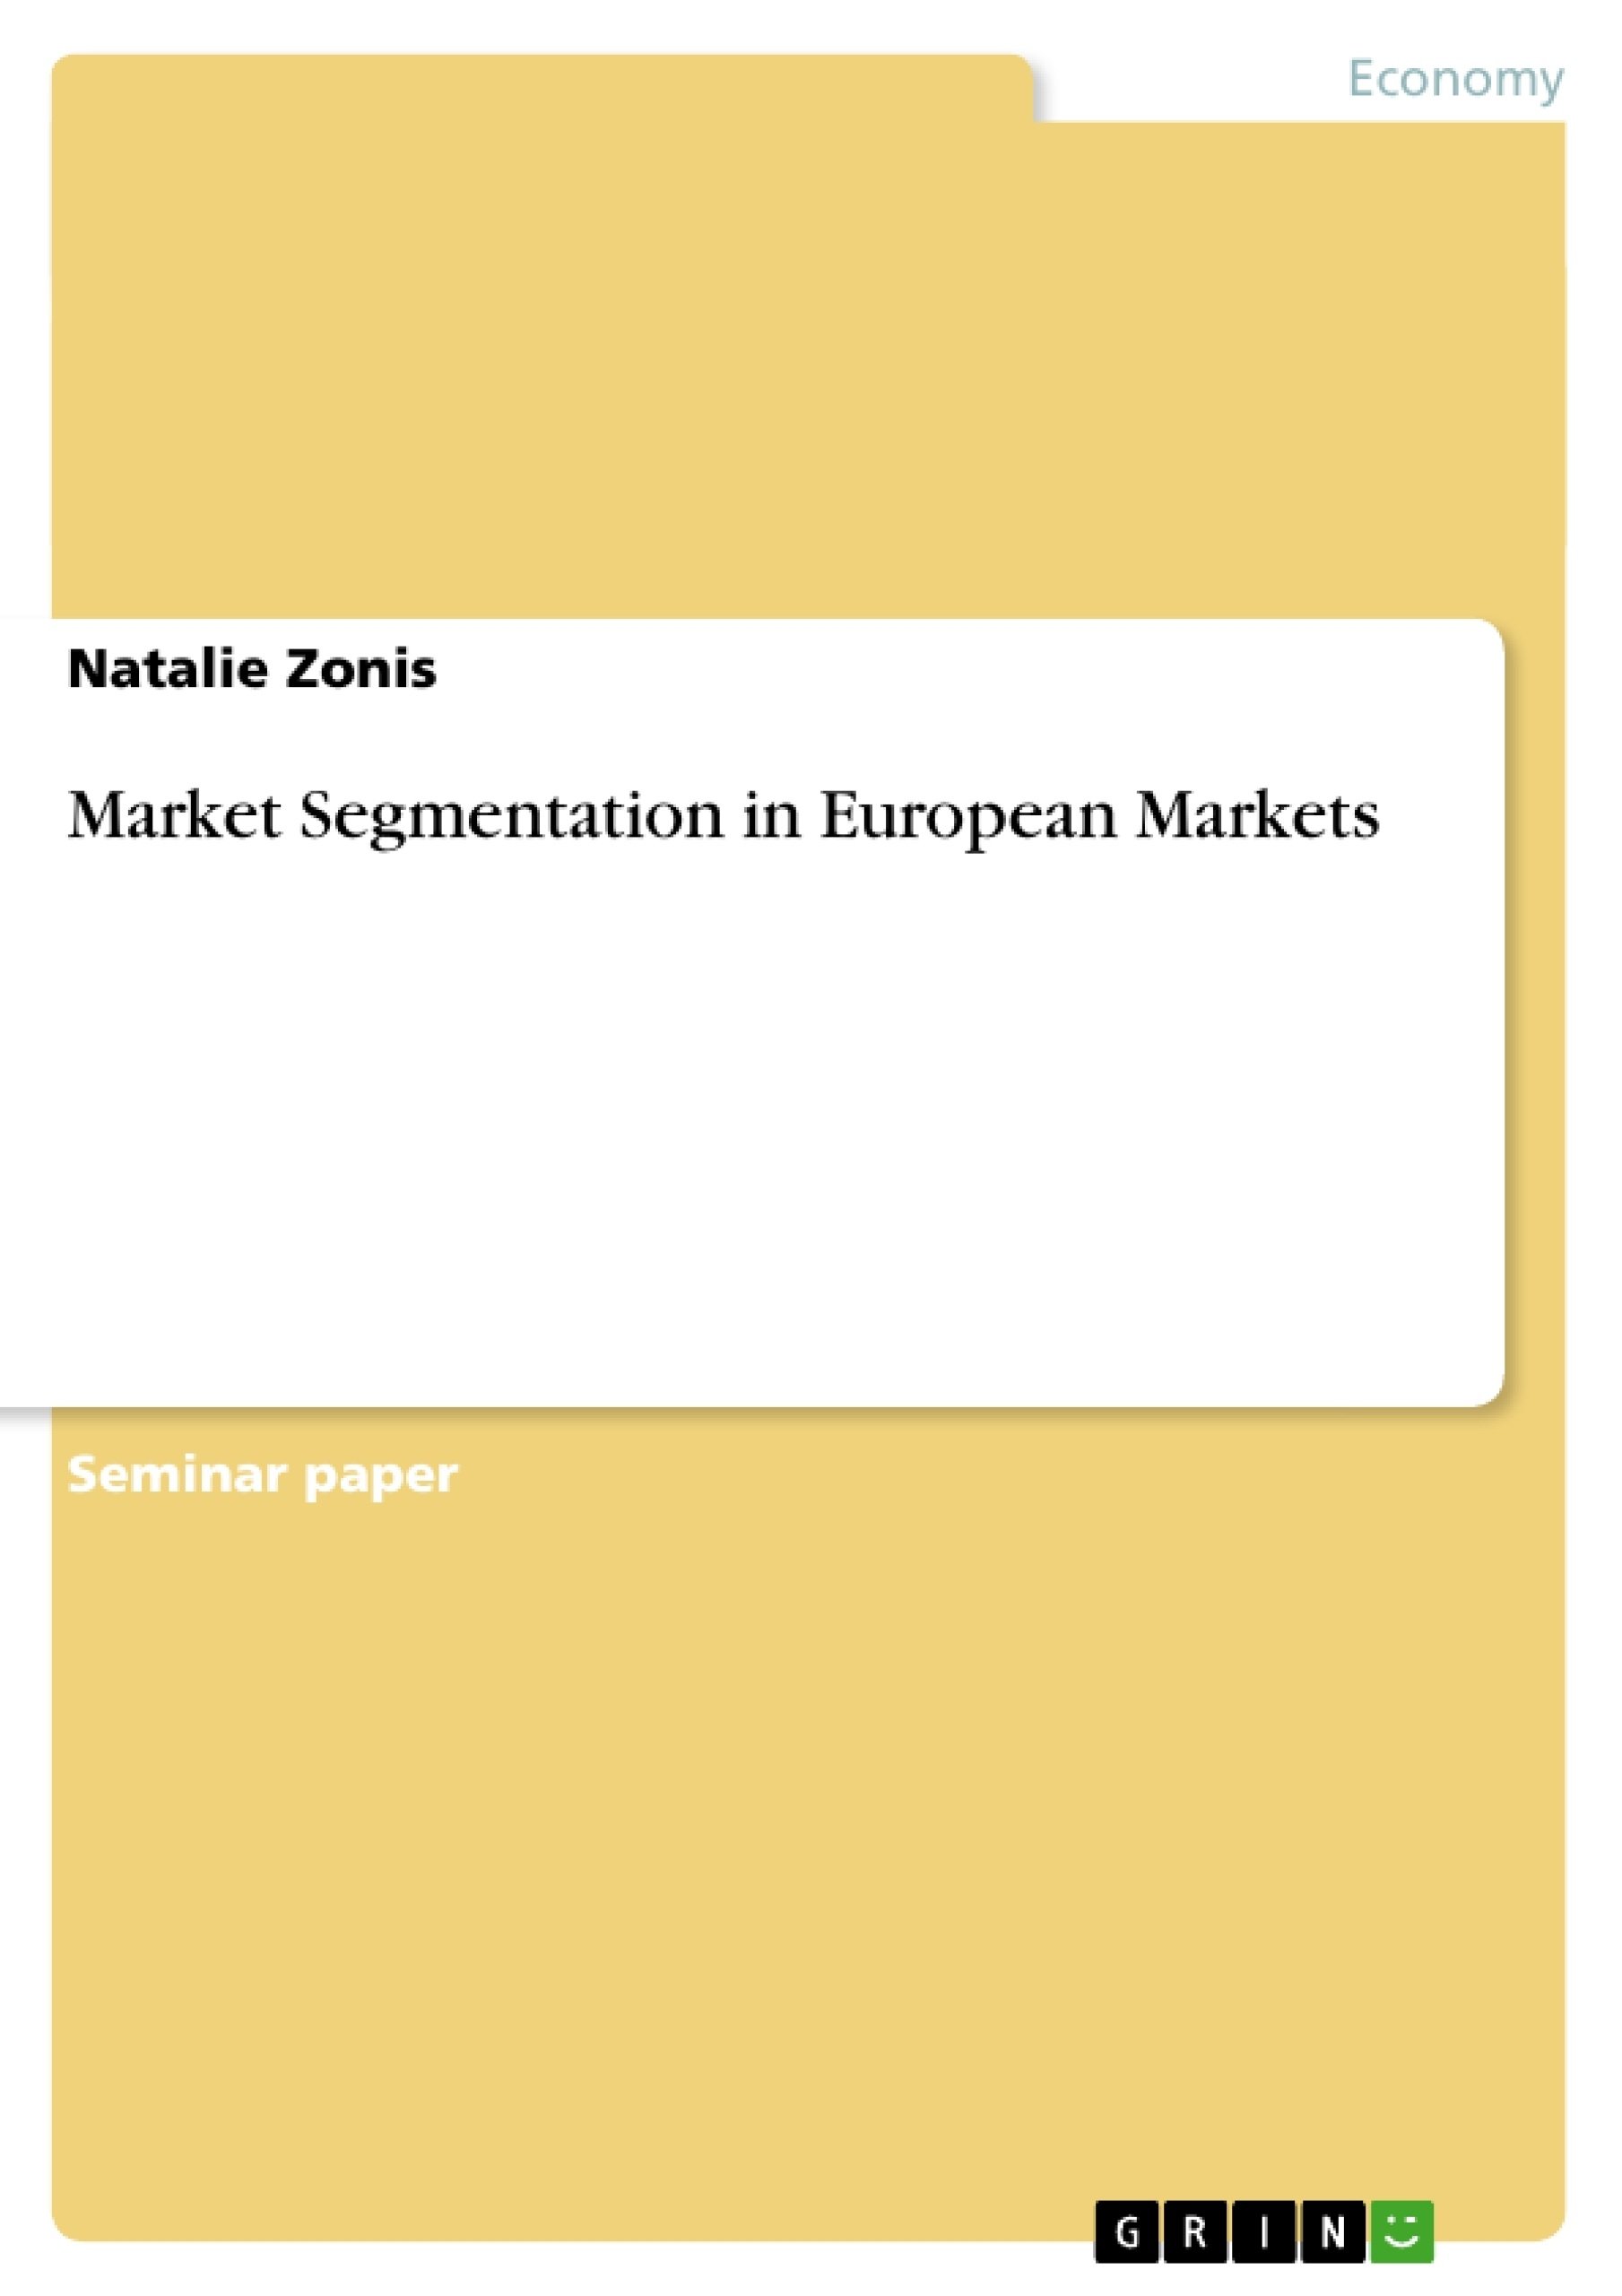 market segmentation essay market segmentation in european markets publish your masters